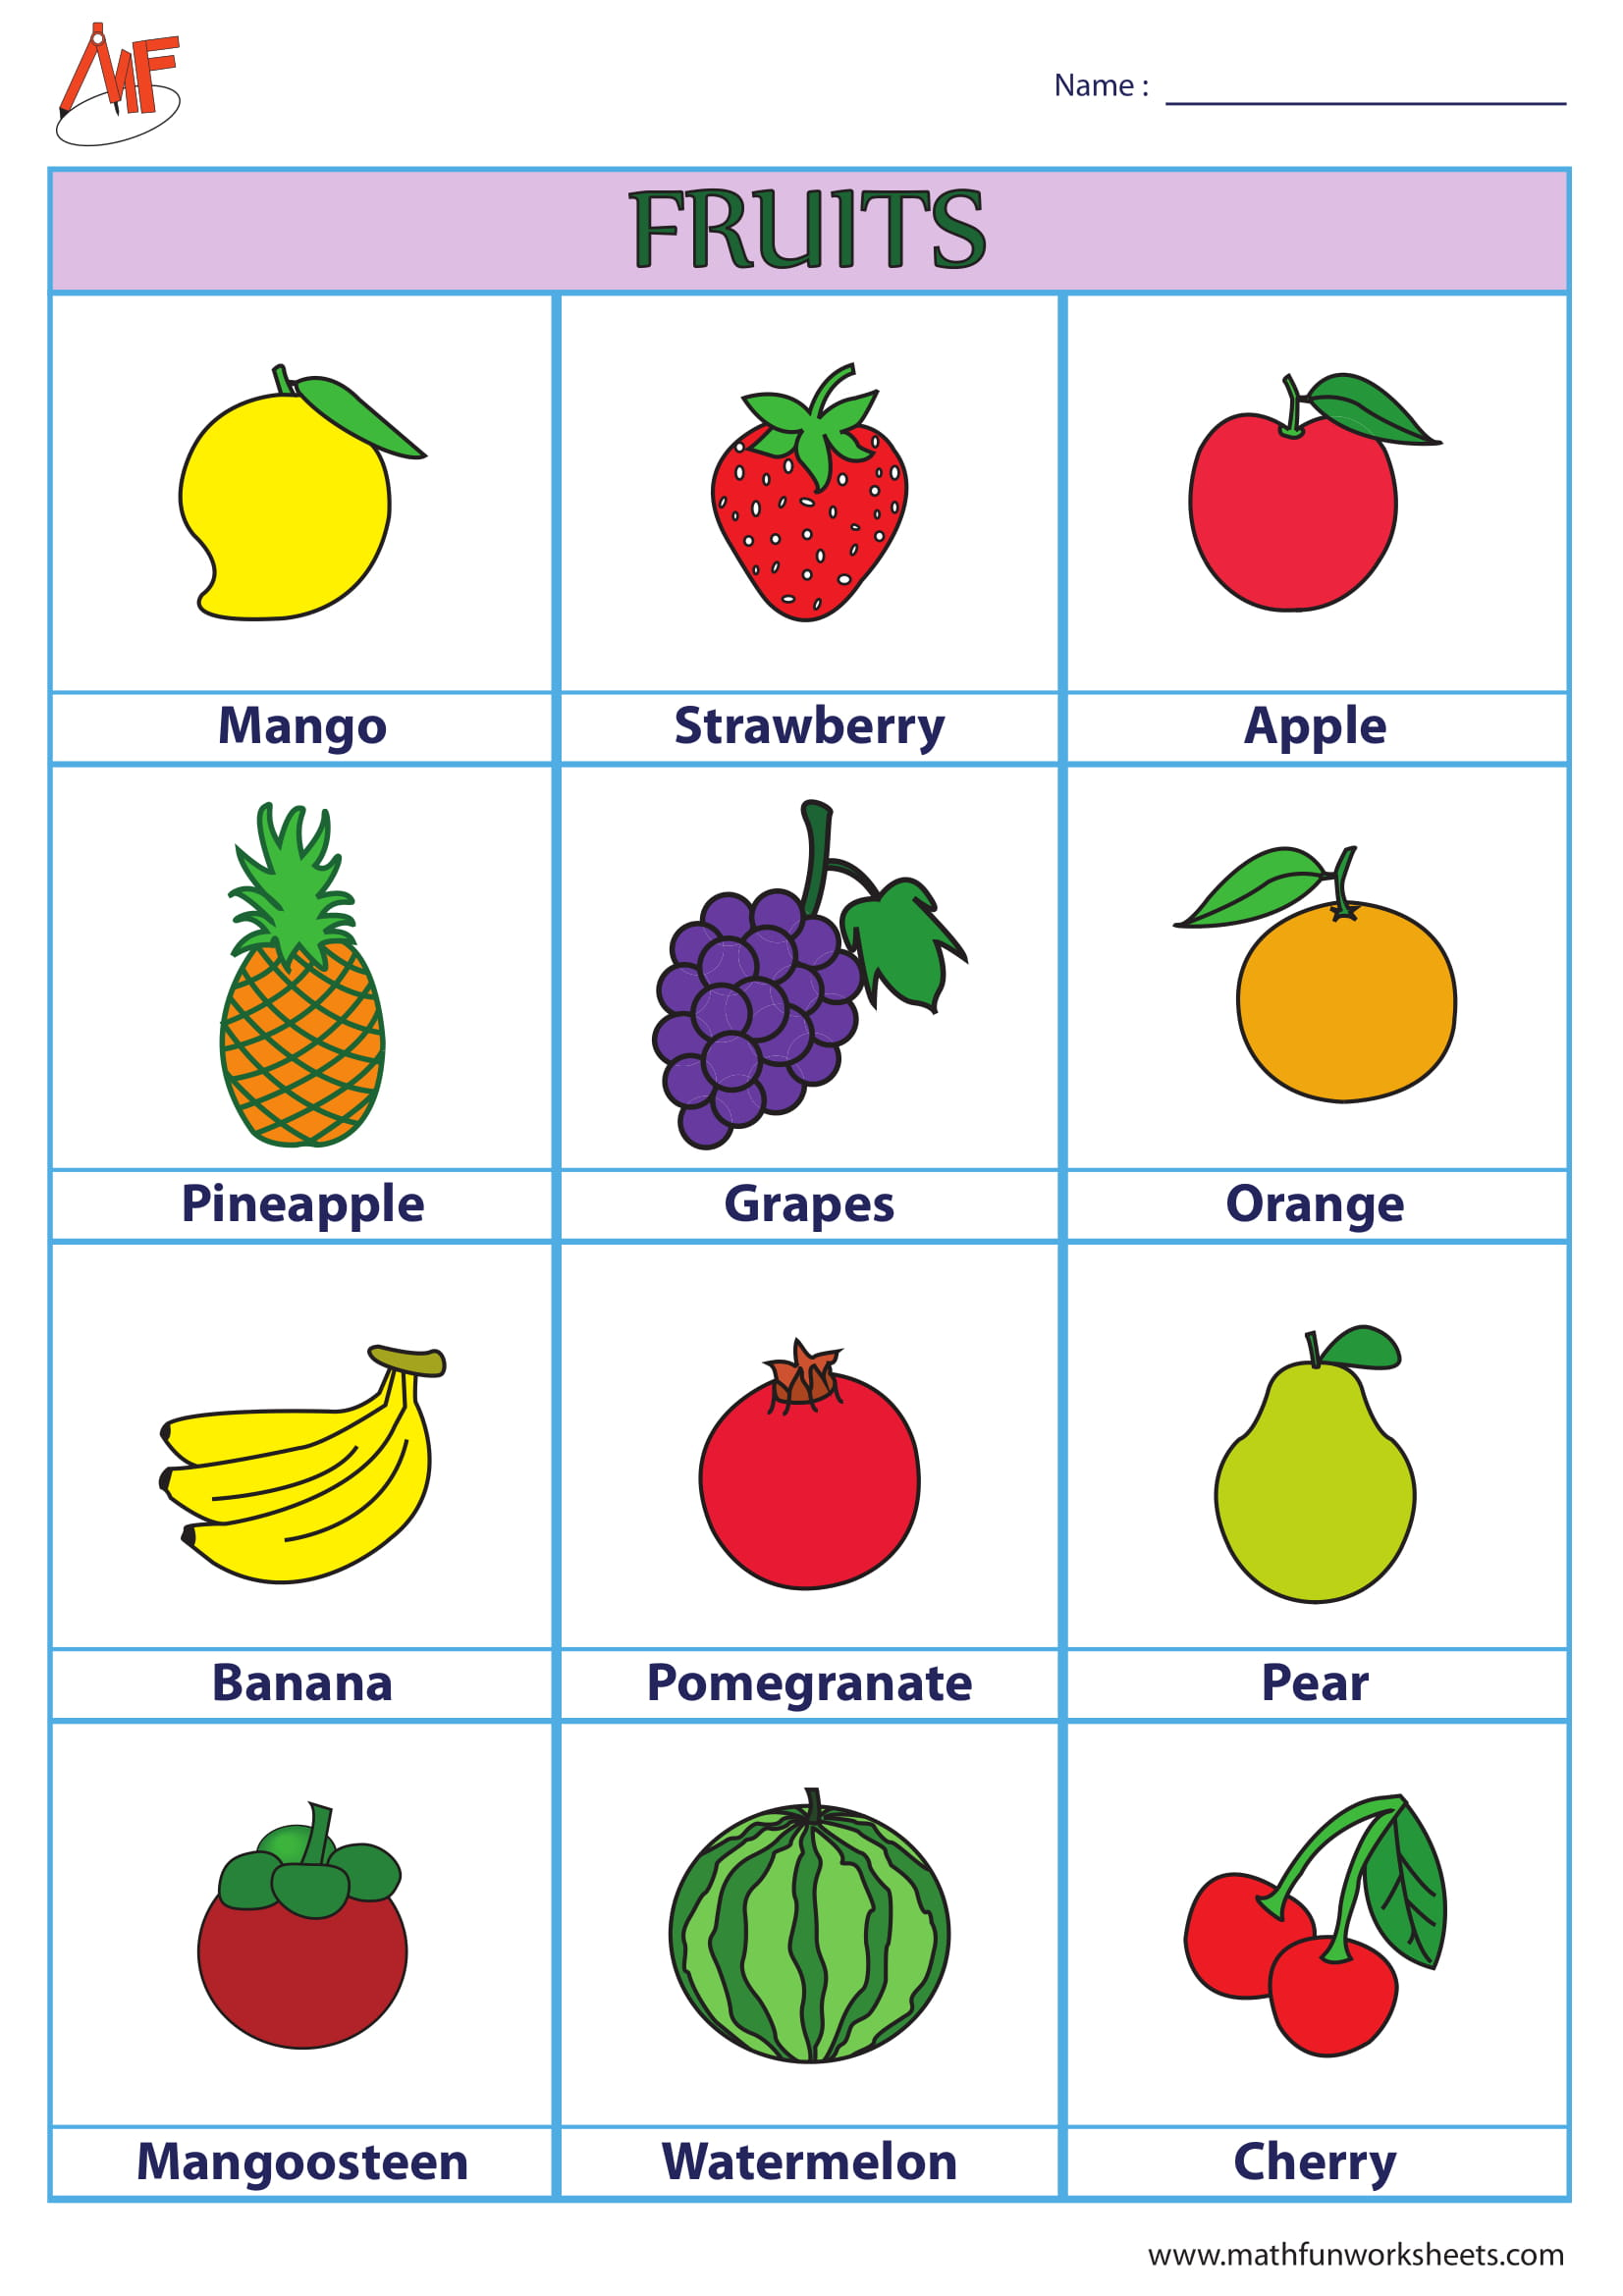 BASIC CHARTS FOR KIDS